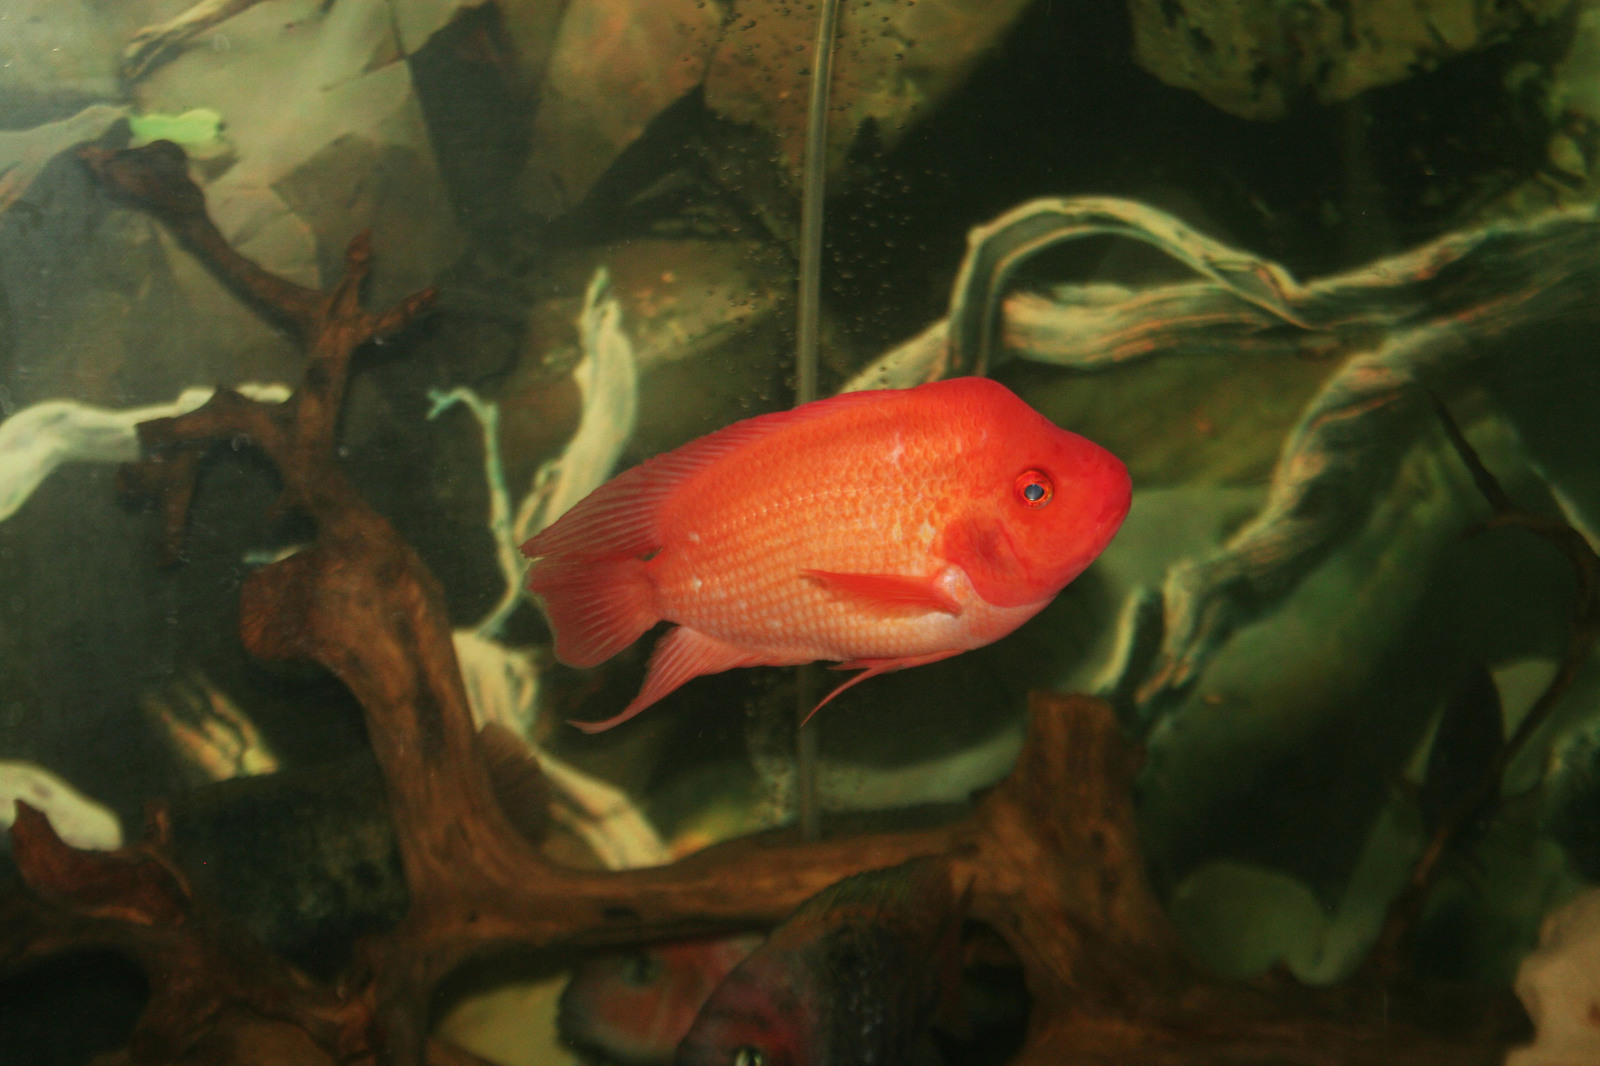 Male Midas, for cichlids fans  | by alden praptono